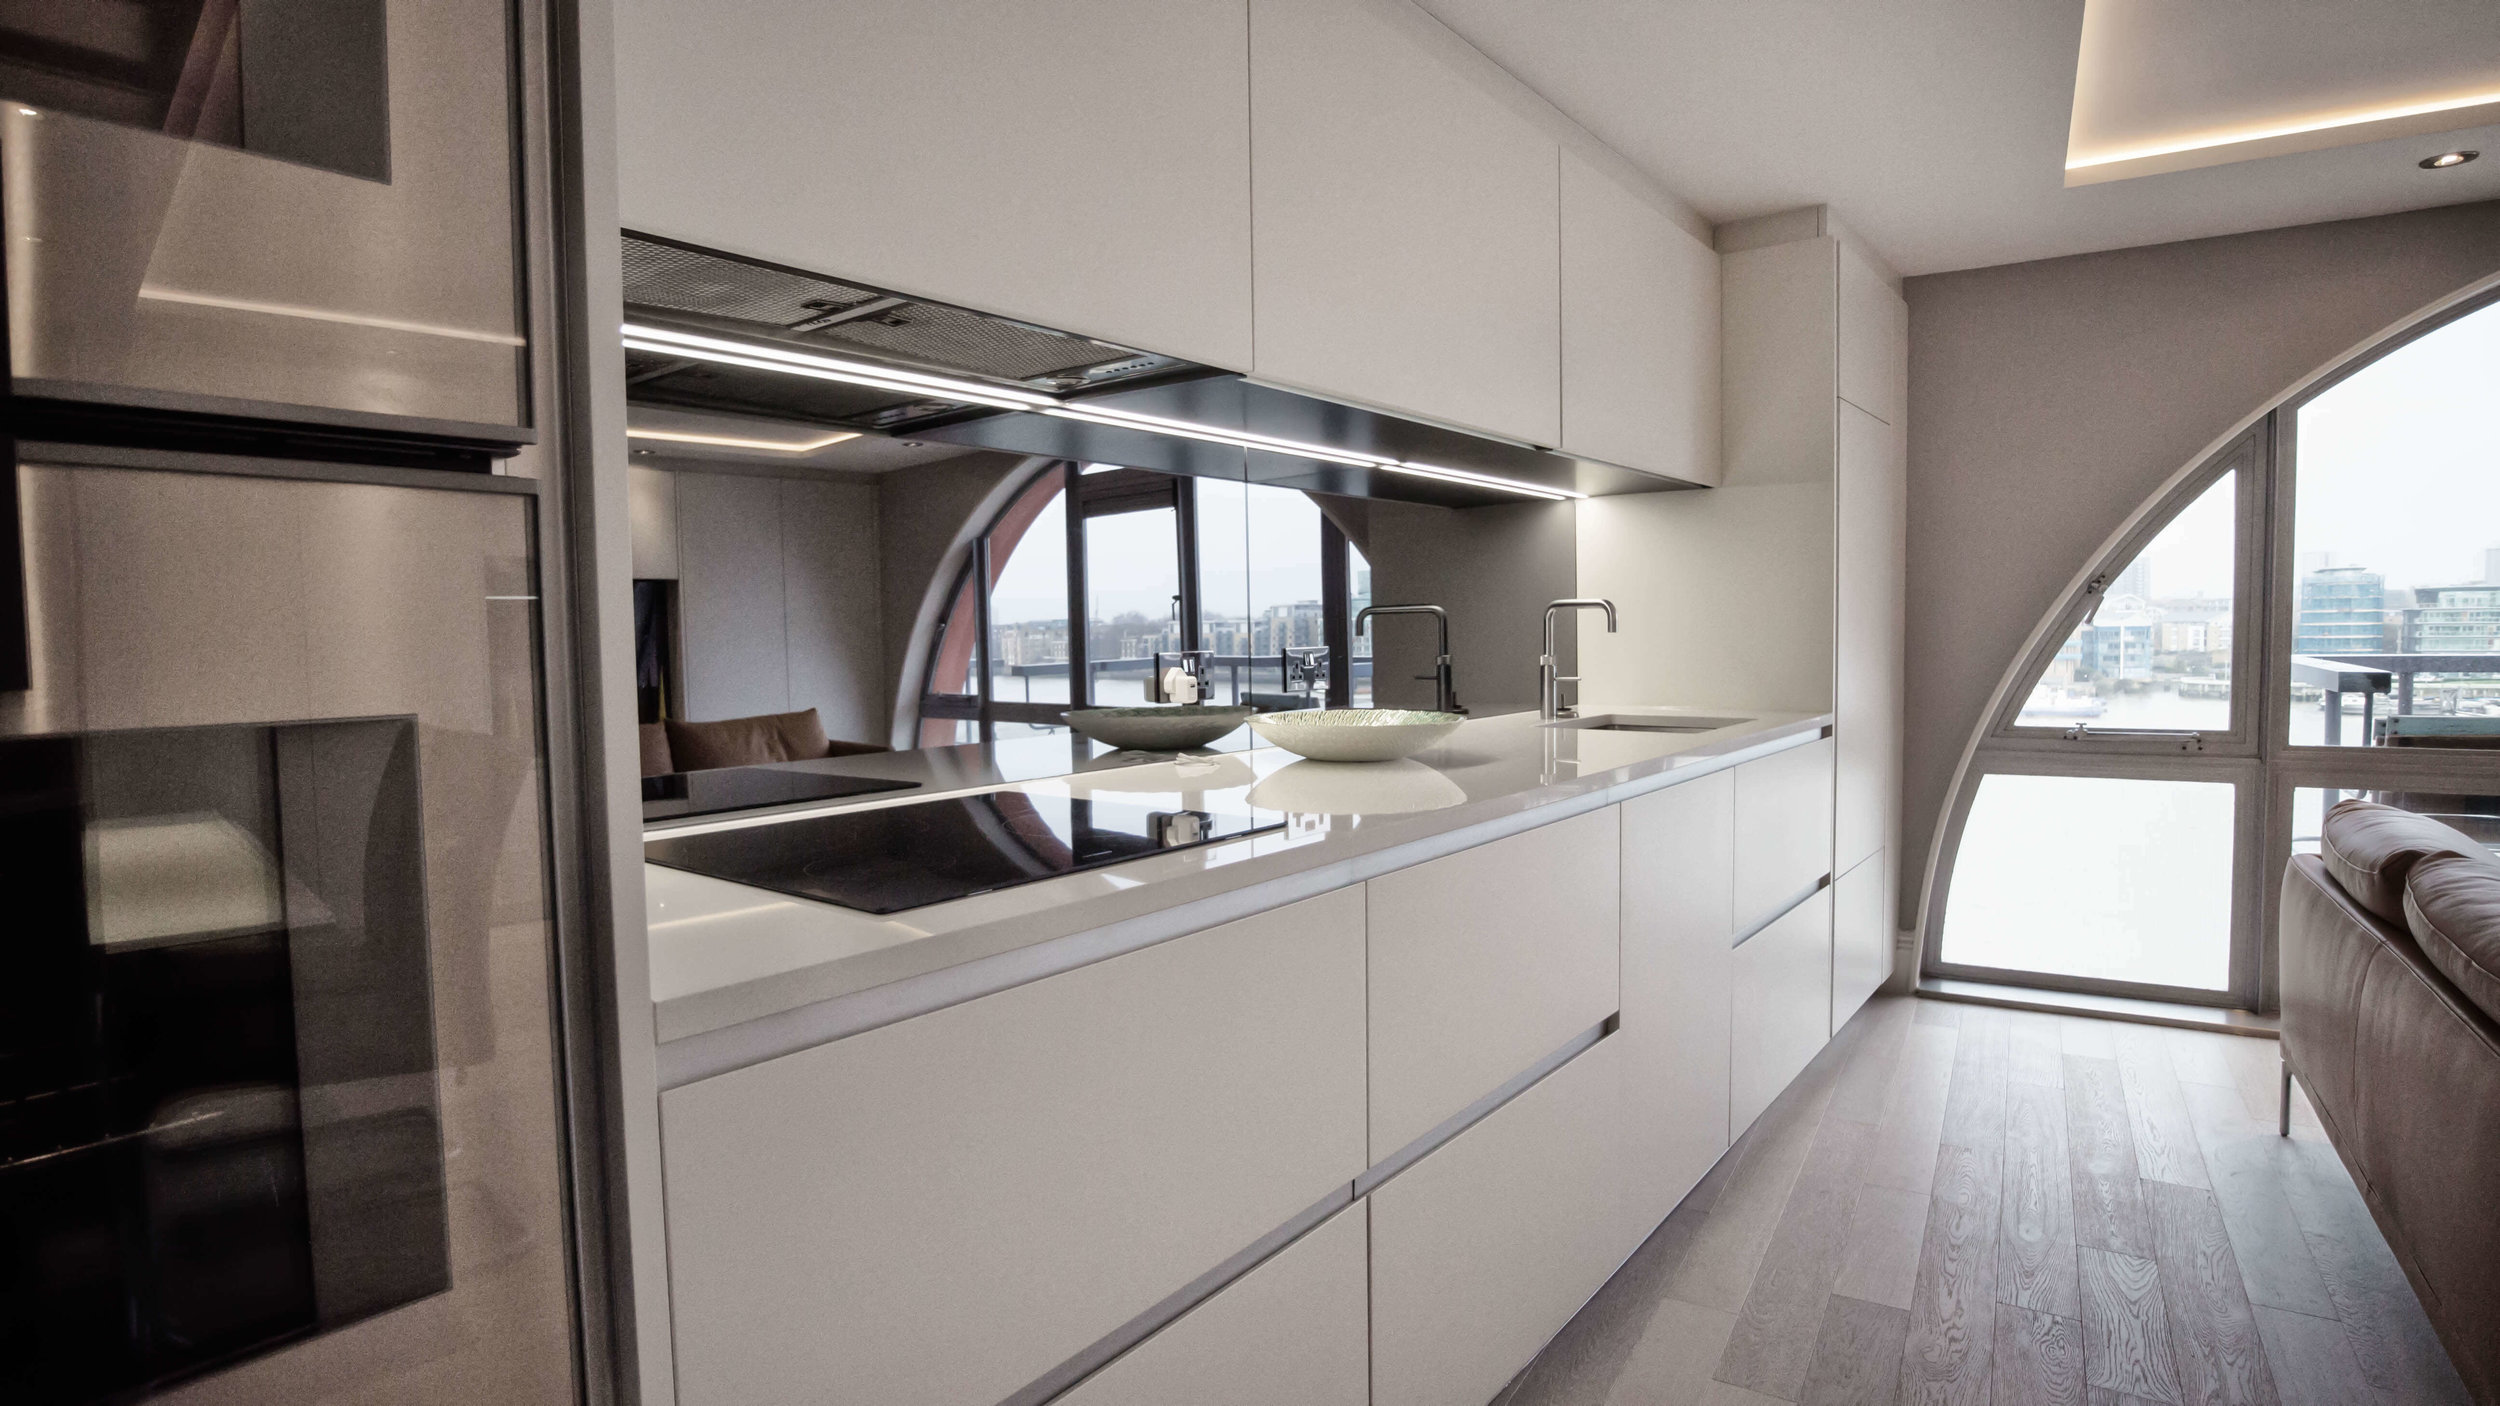 Ernest-Tsui-Architects-and-Partners-China-Wharf-Open-Plan-Kitchen.jpg